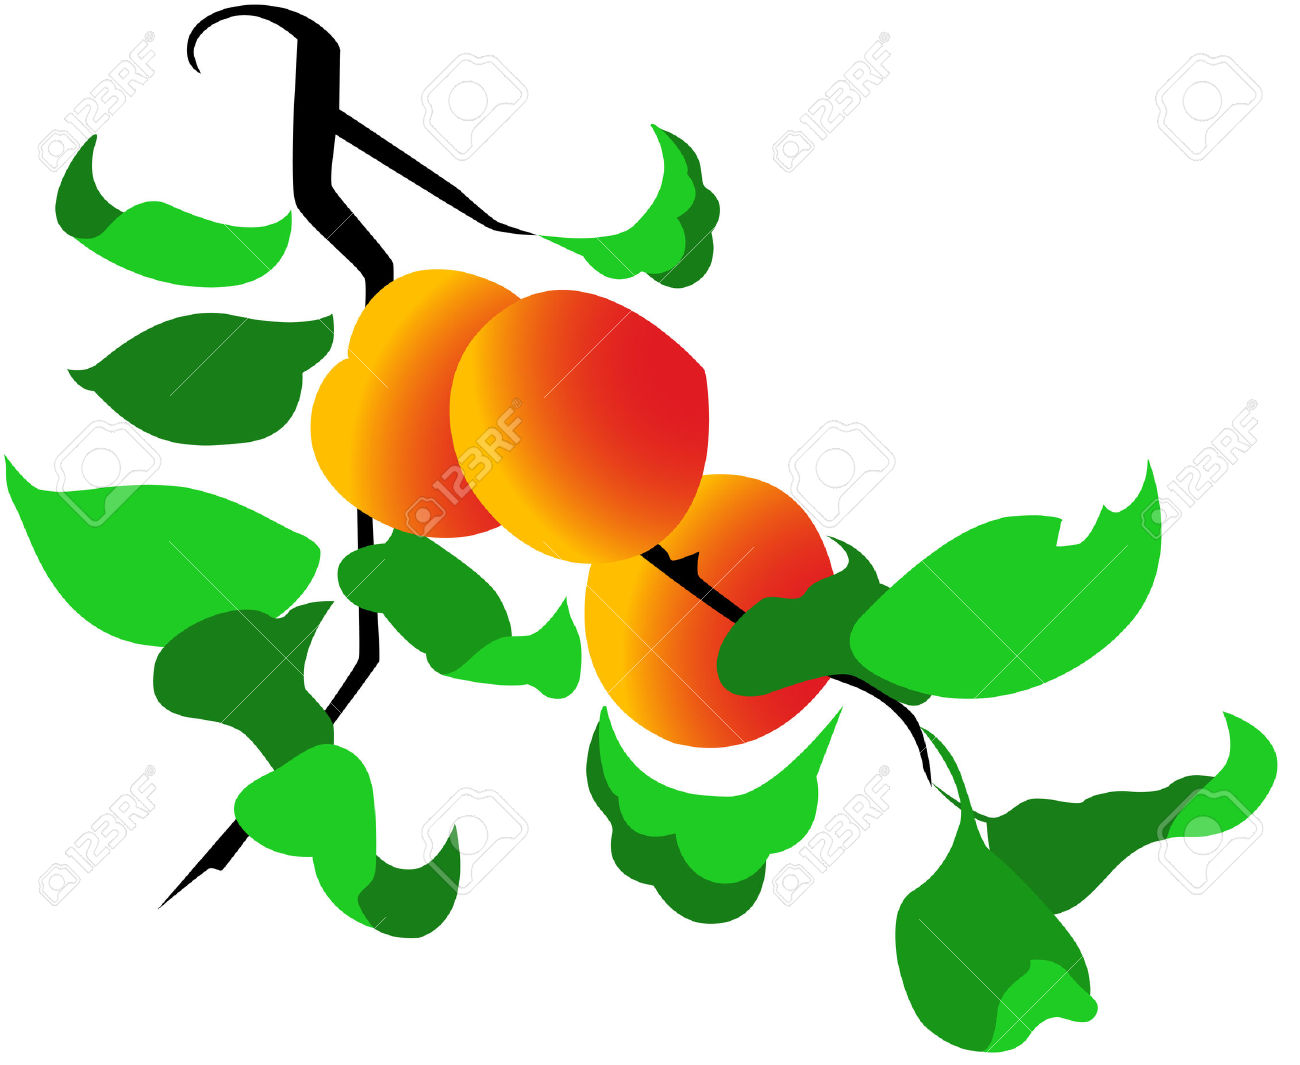 Peaches clipart peach tree. Cliparts free download best